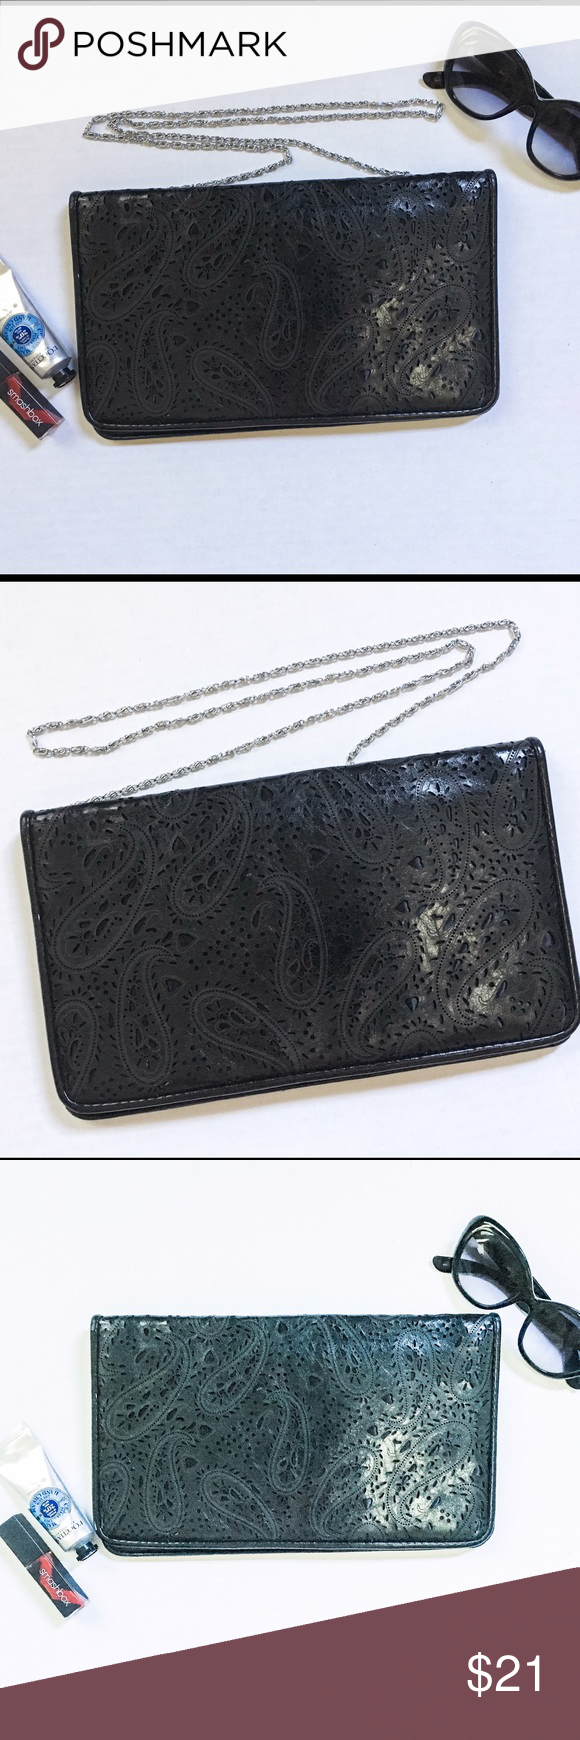 Laser Cut Pattern Black Crossbody Clutch Fabulous faux leather crossbody clutch bag with beautiful laser cut paisley pattern from Miztique! The silver chain strap is removable, so you can go between a clutch and a crossbody! EUC clean inside and out! 10% of proceeds go to a local nonprofit organization! Miztique for Target Bags Crossbody Bags